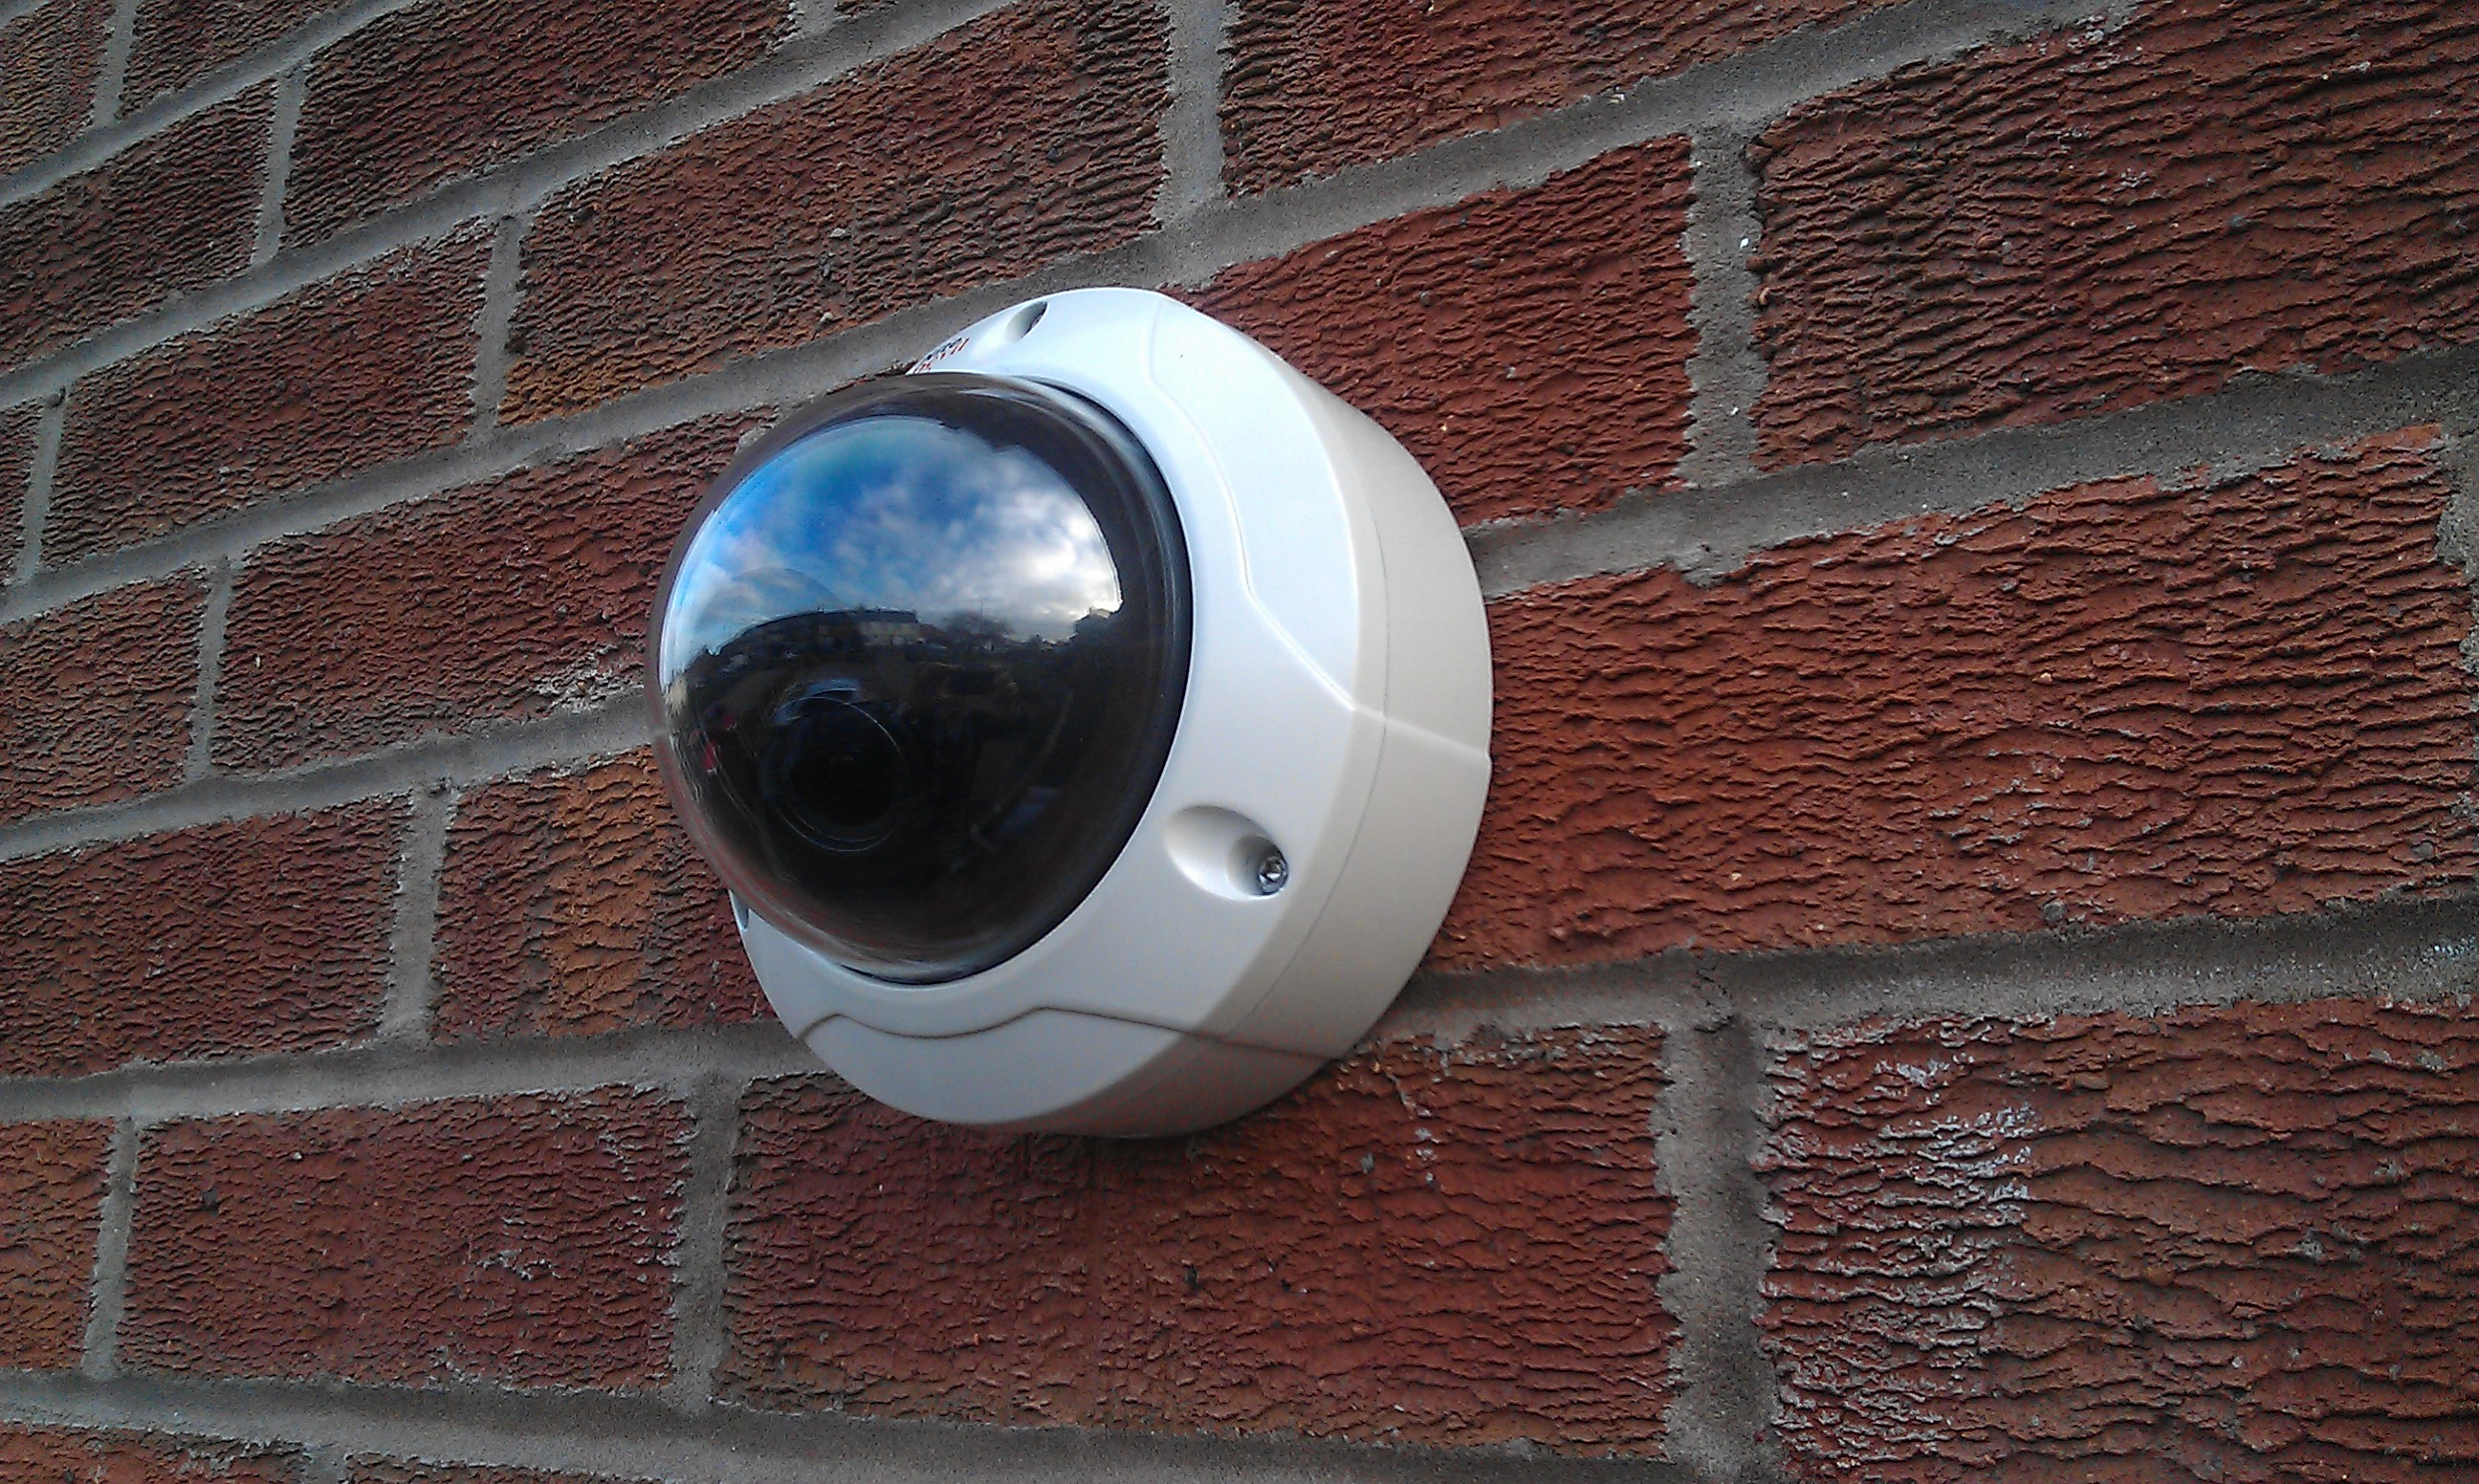 Marlborough Town Council can finally decide on what CCTV system to introduce following a public consultation